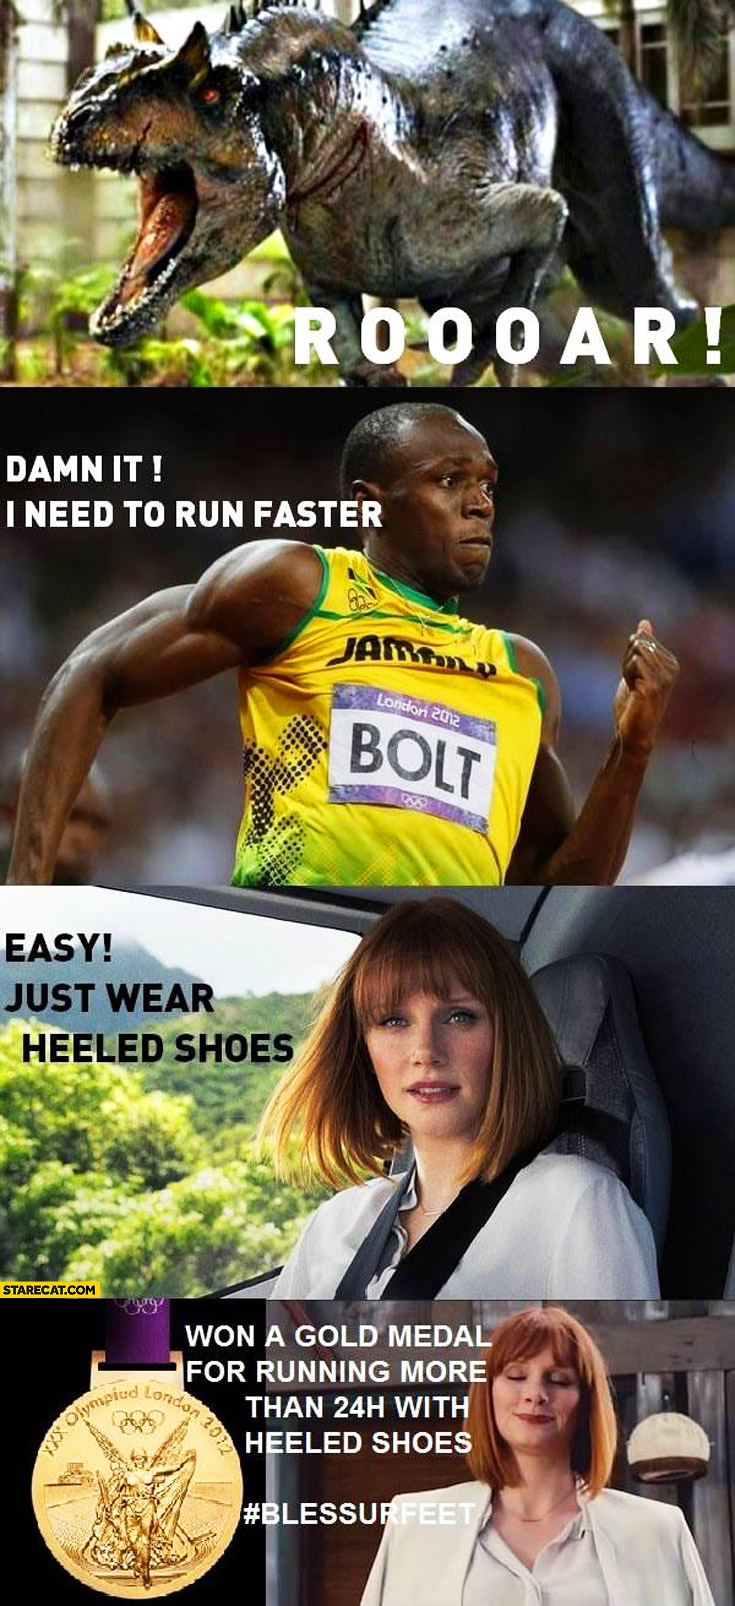 Jurassic Park damn it need to run faster Usain Bolt easy just wear heeled shoes gold medal for running more than 24h with heeled shoes